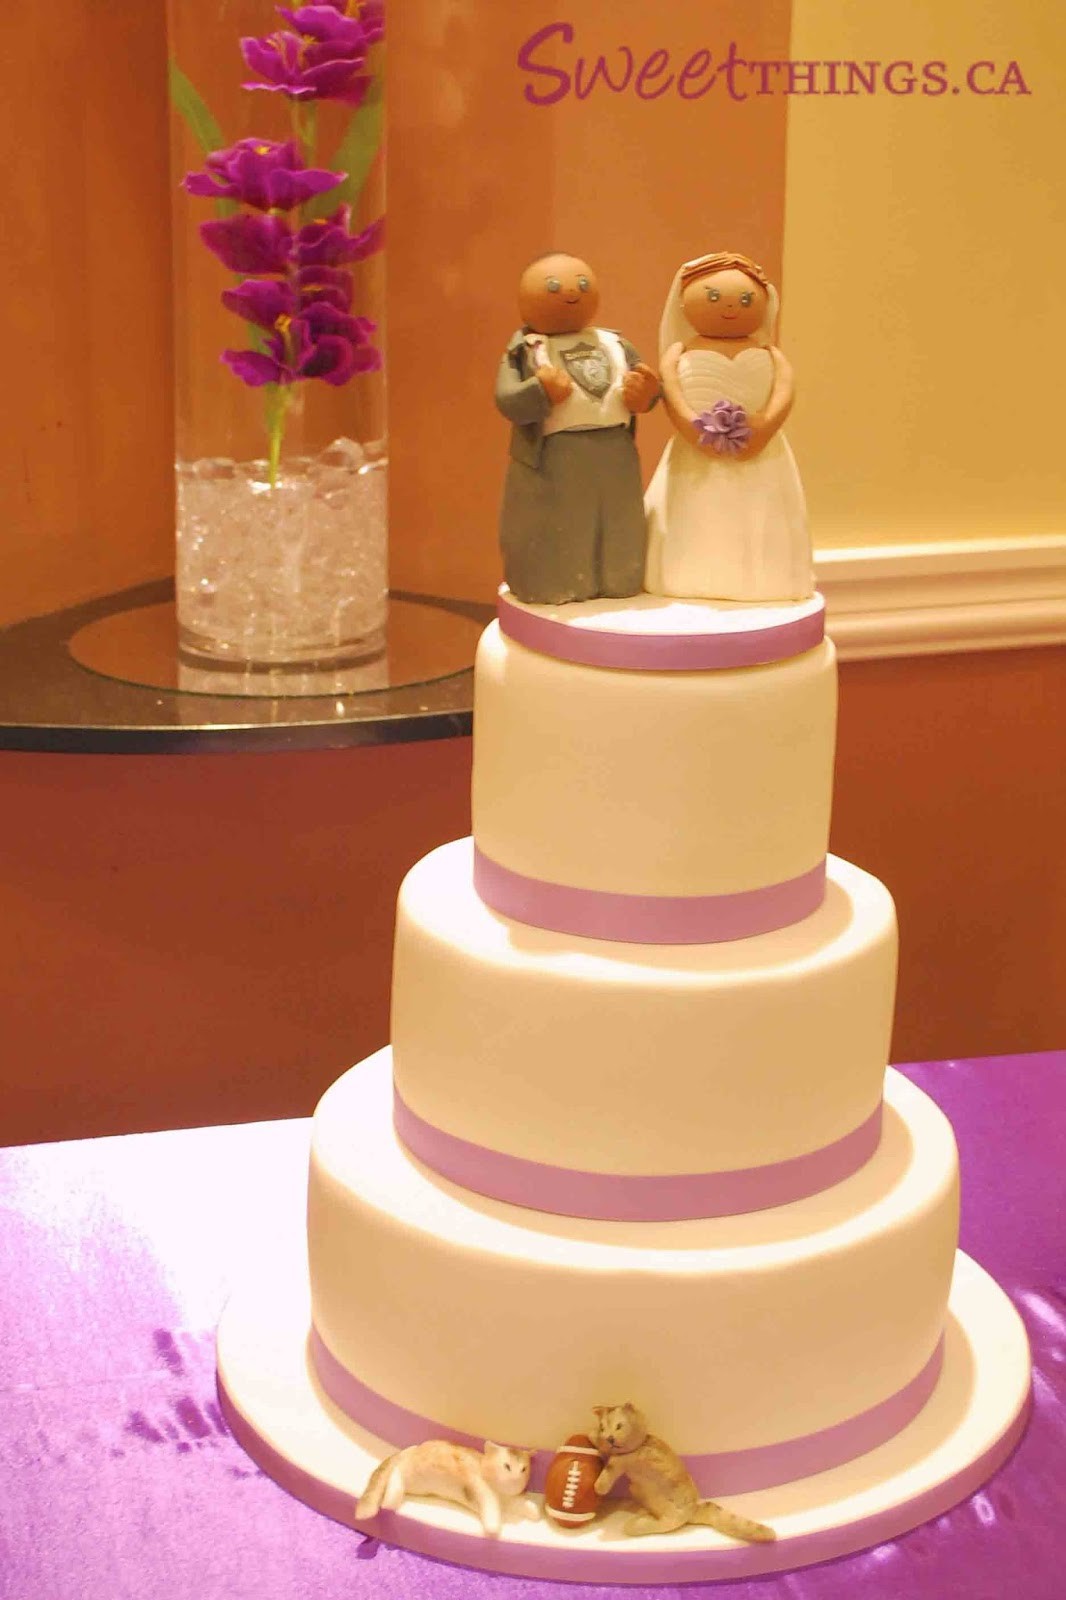 SweetThings Wedding Cake with a Hint of Purple and Football